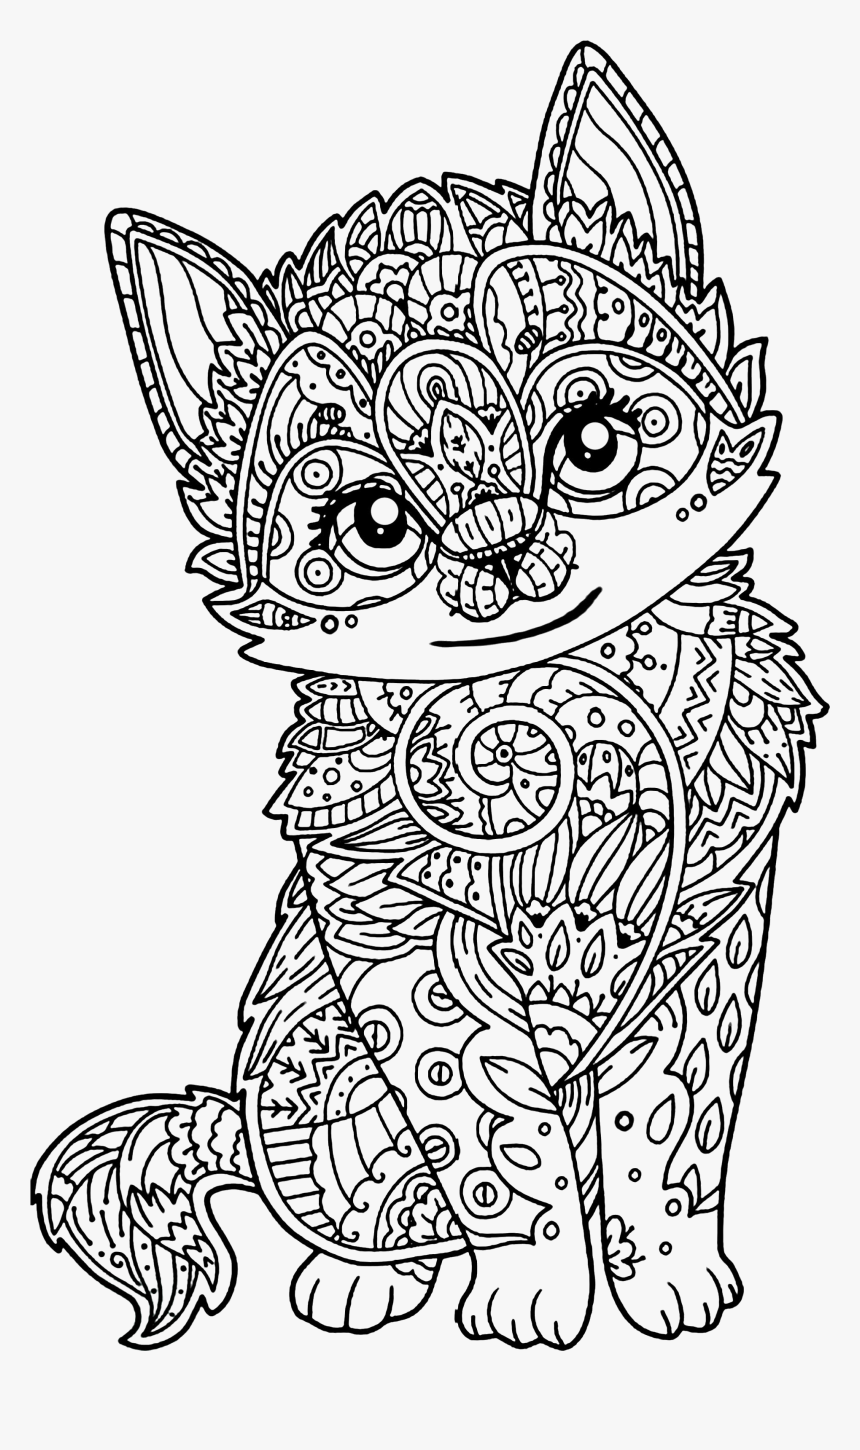 Cats Coloring Pages and Printable Activities 1 | 1450x860